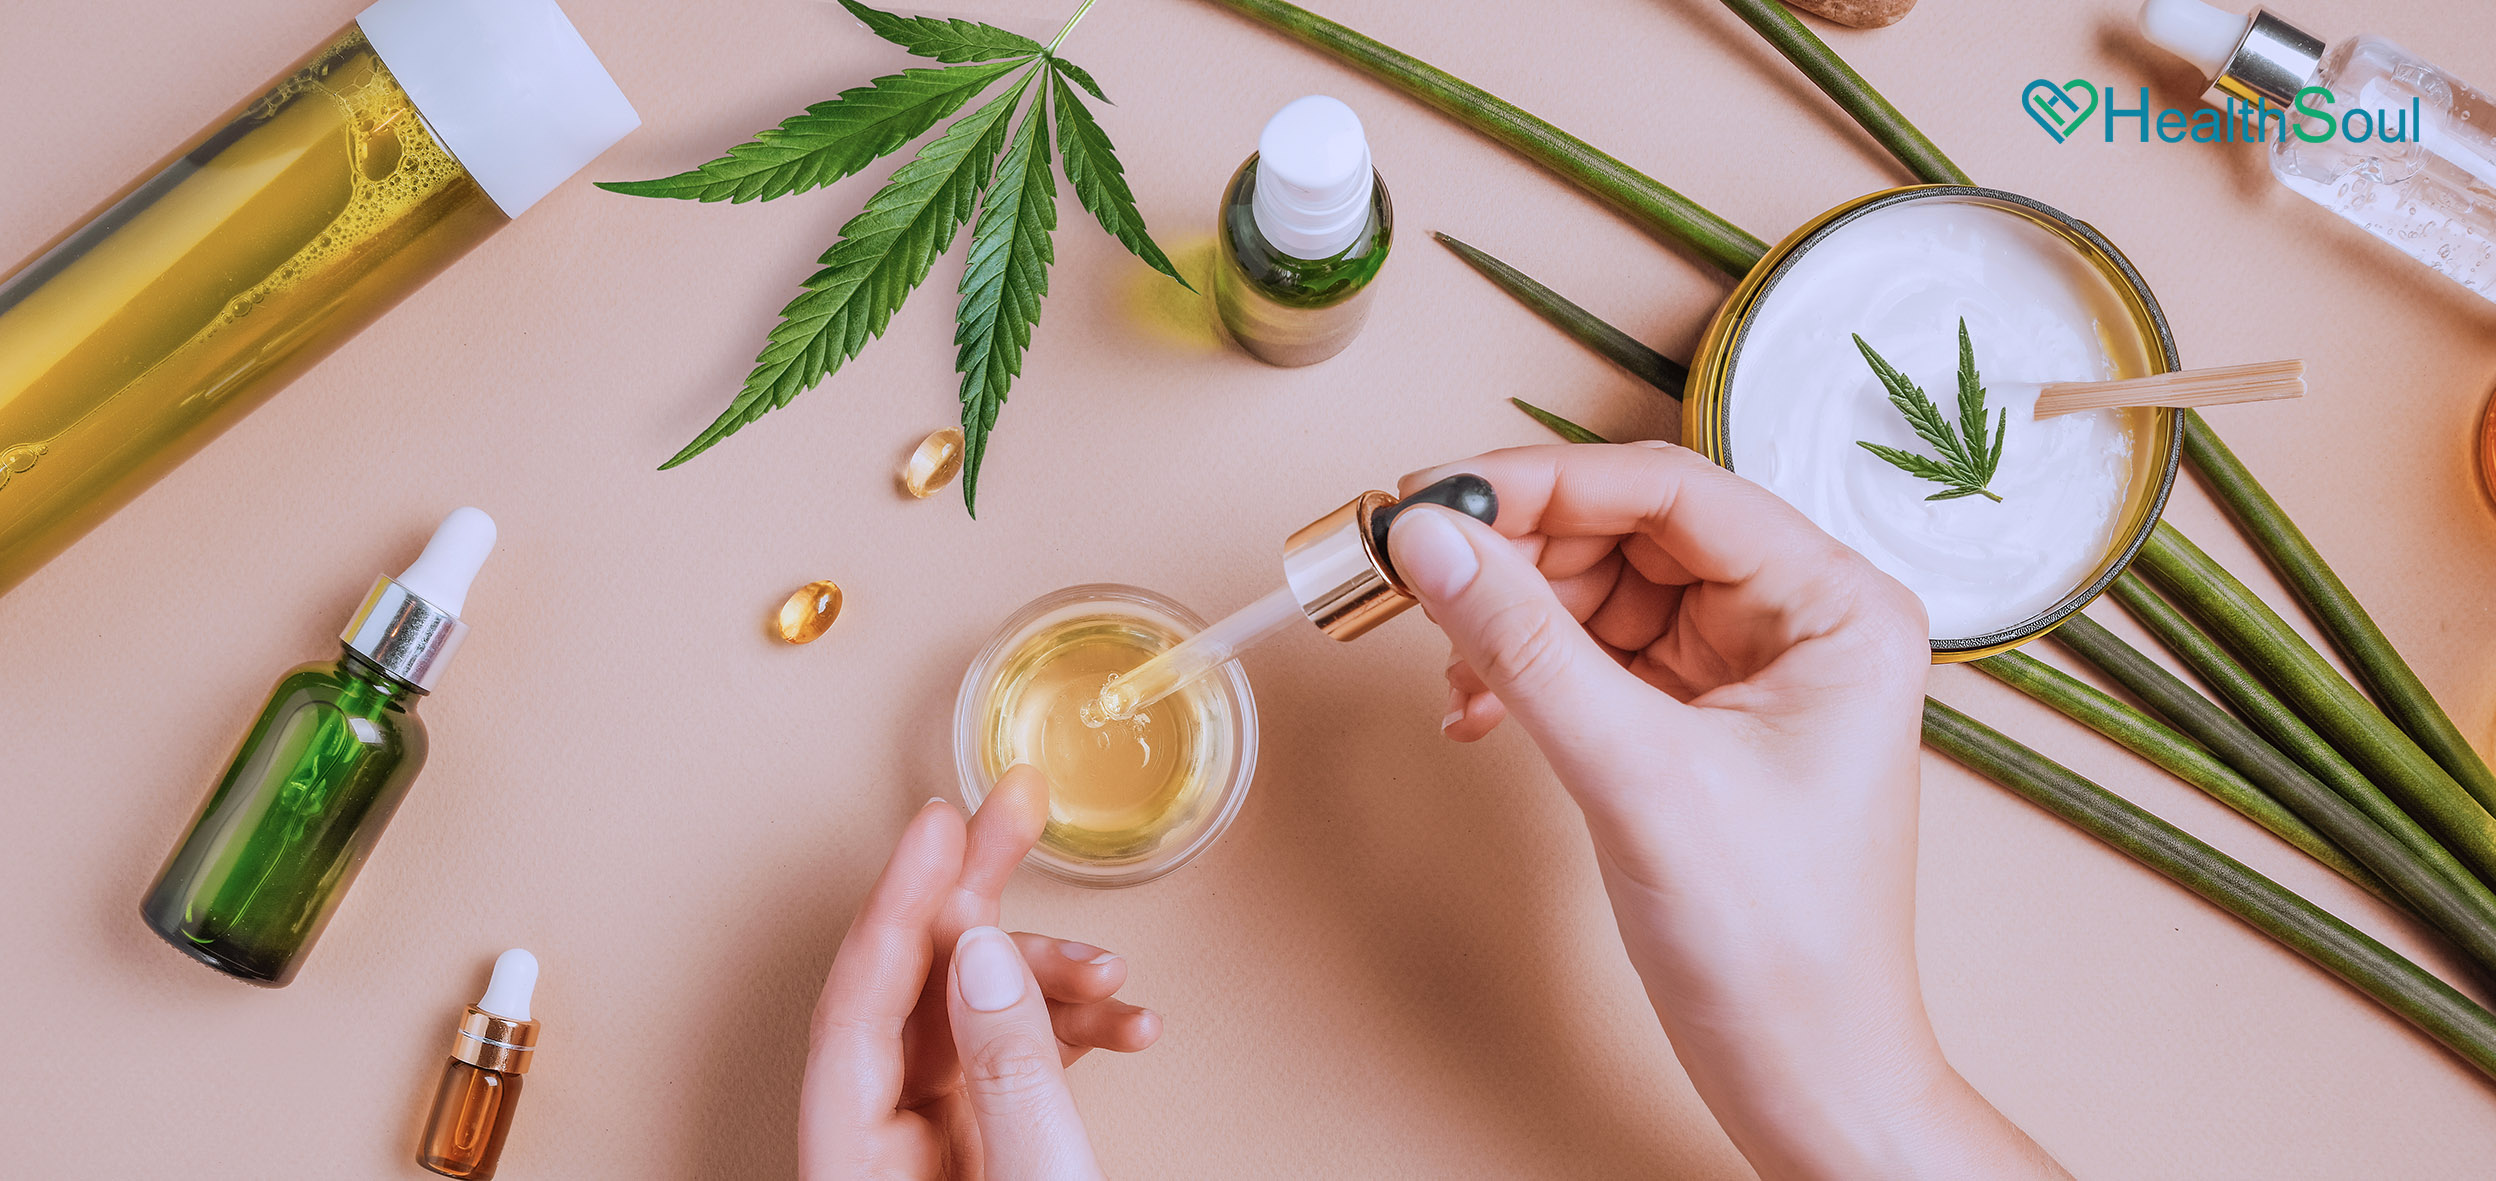 Ultimate 4 Benefits Of CBD Products You Should Know   HealthSoul